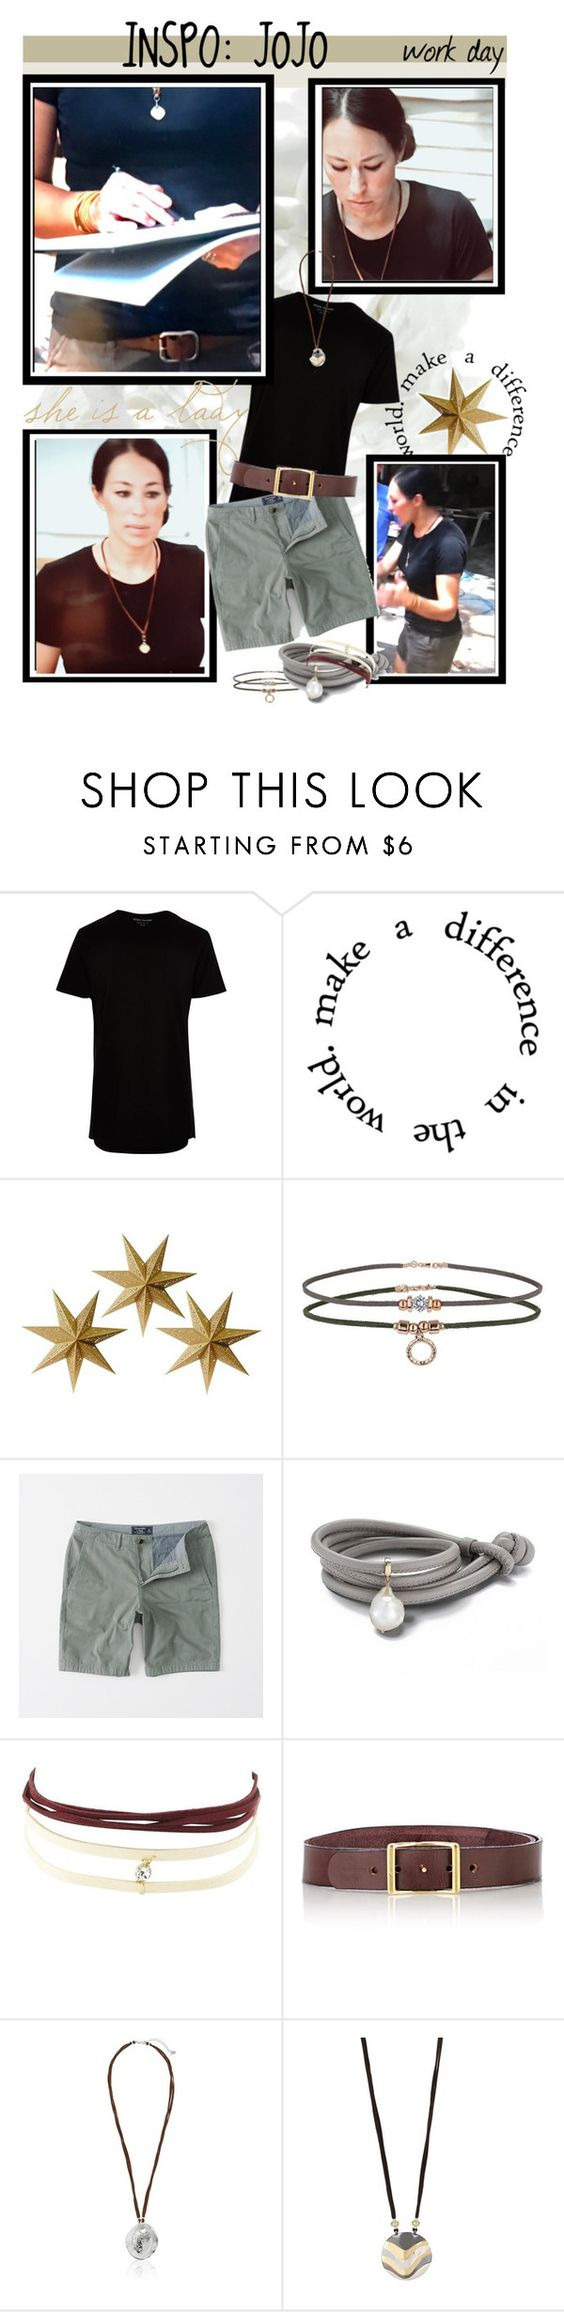 """""""JoJo Magnolia work day"""" by thesouthernsnowflake ❤ liked on Polyvore featuring River Island, LumaBase, Miss Selfridge, Abercrombie & Fitch, mizuki, Charlotte Russe, C.S. Simko and Robert Lee Morris"""